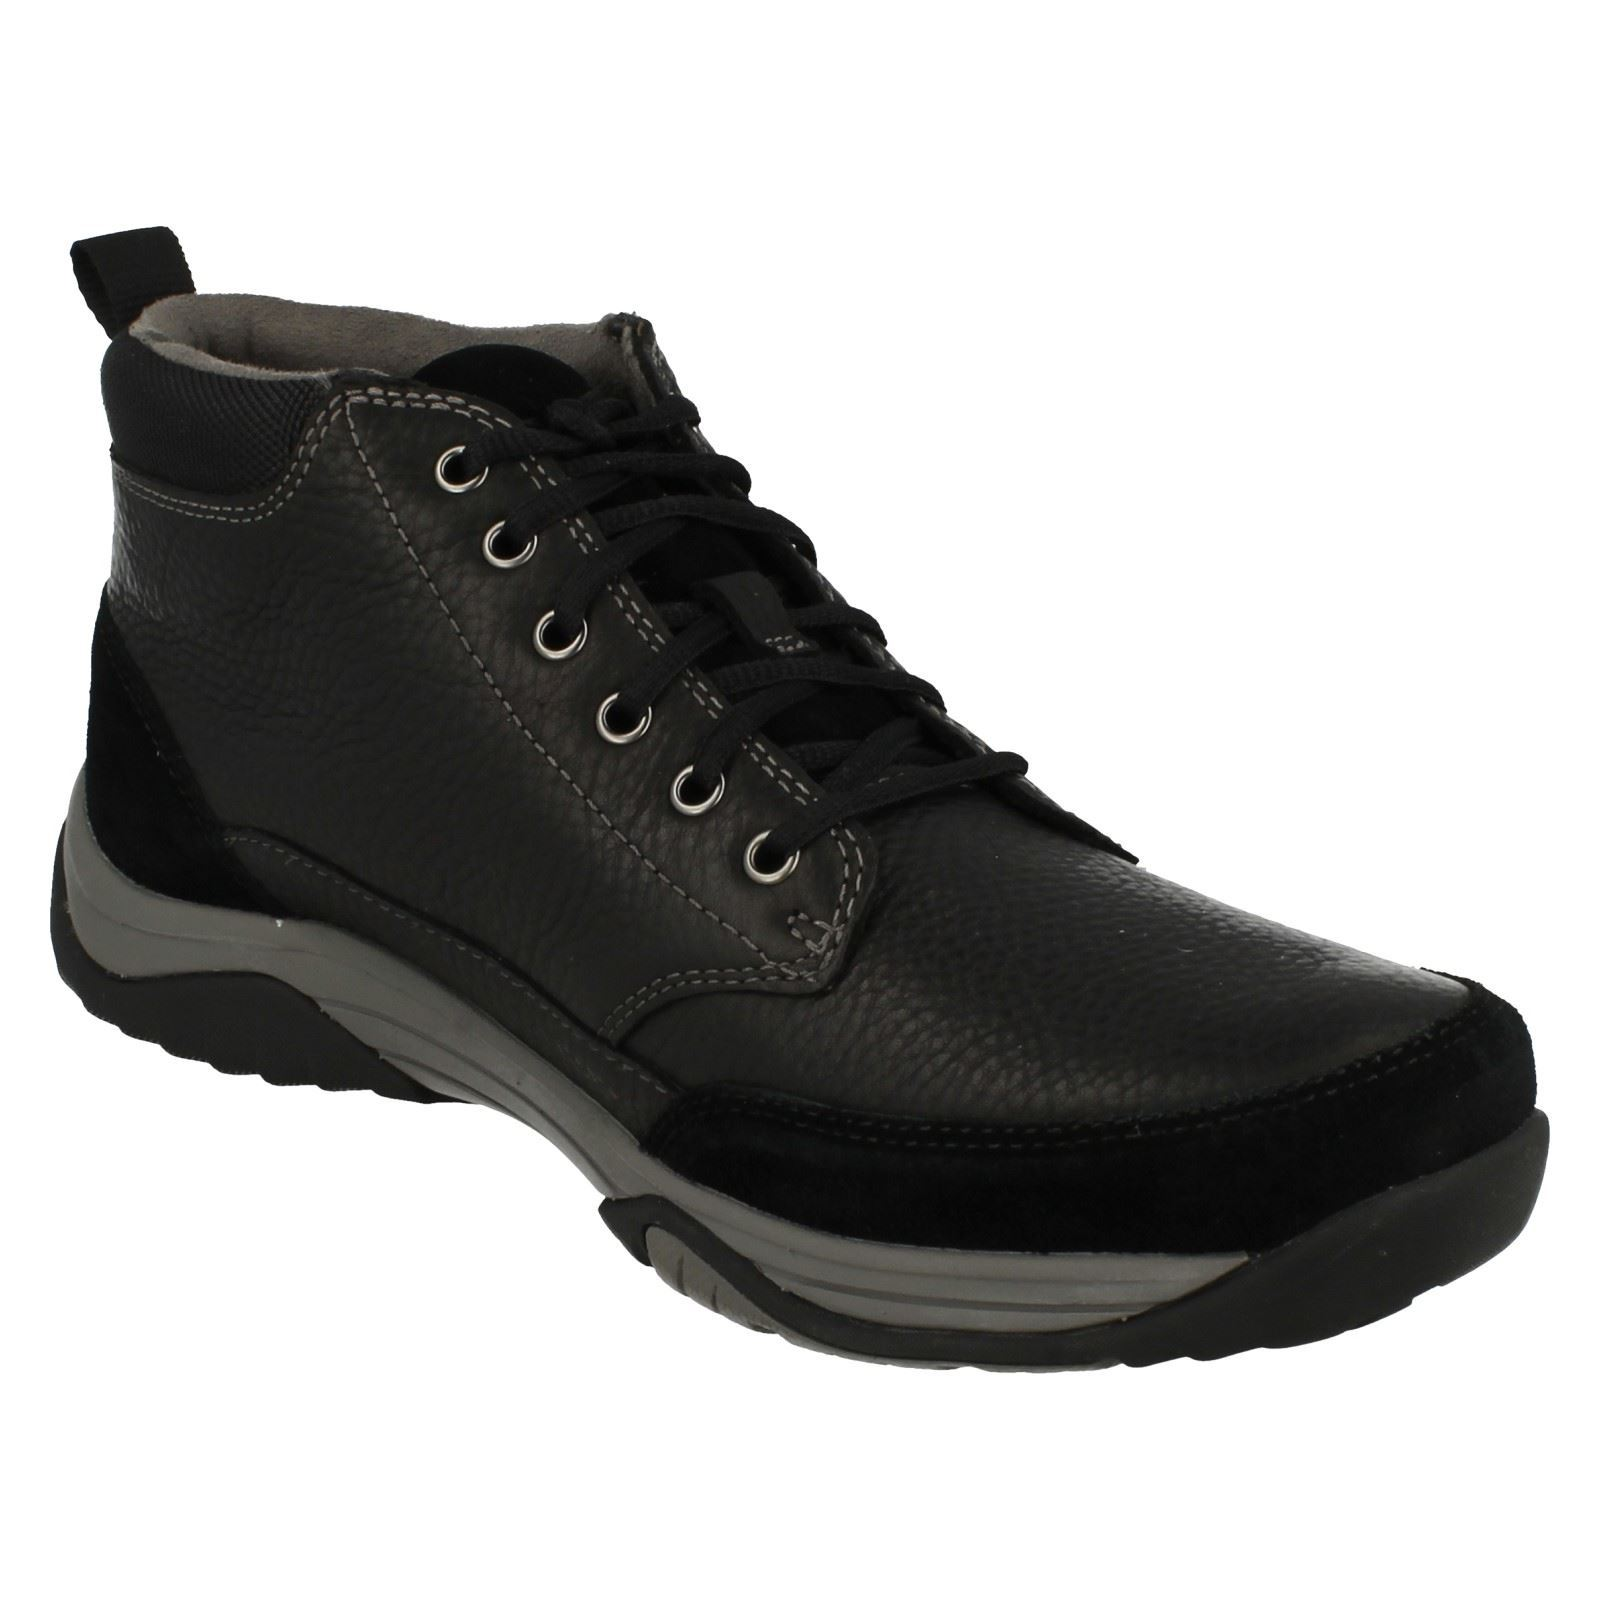 'Mens Clarks' Waterproof Lace Up Stiefel - Baystone Top GTX